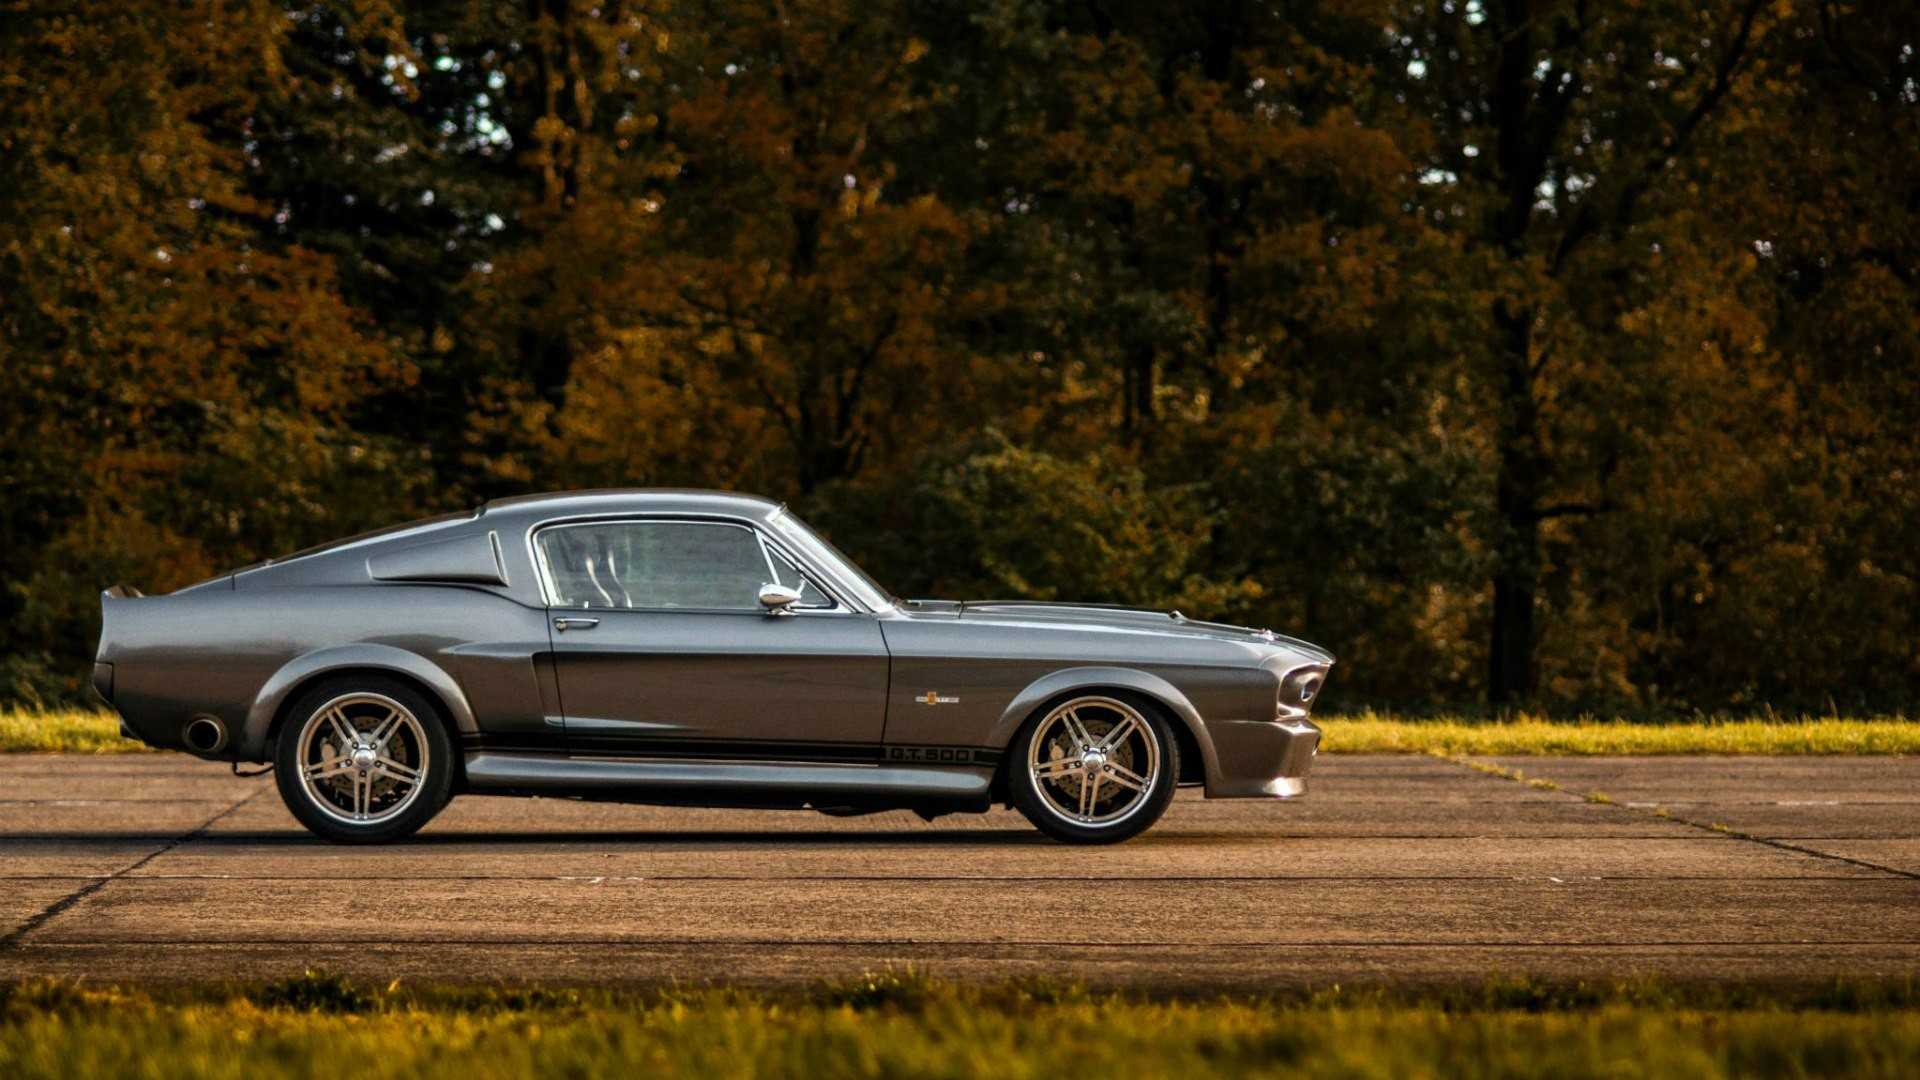 Ford Mustang Shelby Gt500 Eleanor Wallpaper Hd Ford Mustang Shelby Gt500 Papel De Parede Hd Plano De